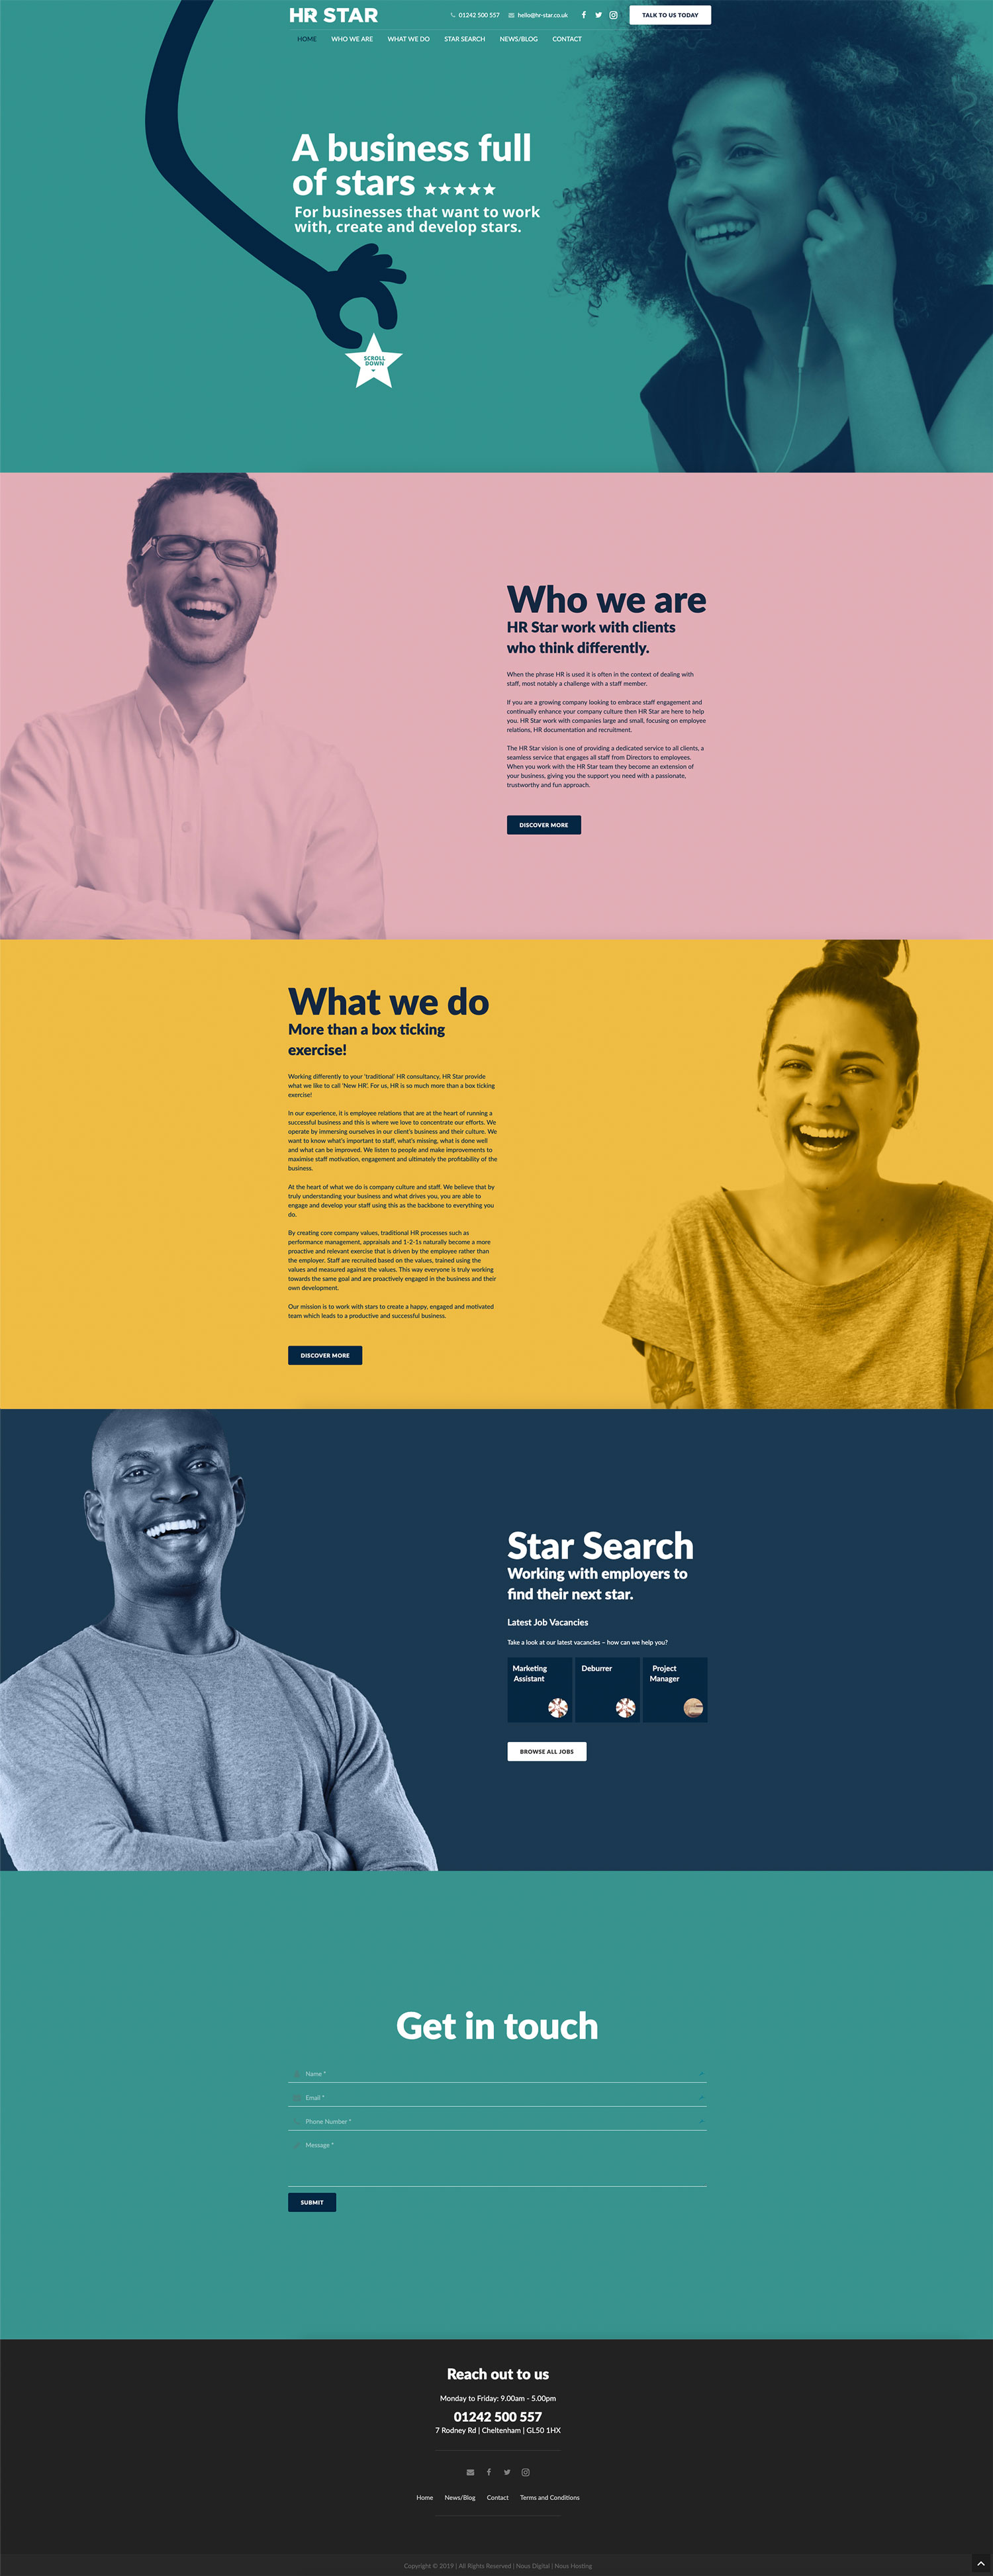 HR Star Home Page Website Design and Build by Nous Digital in Gloucester